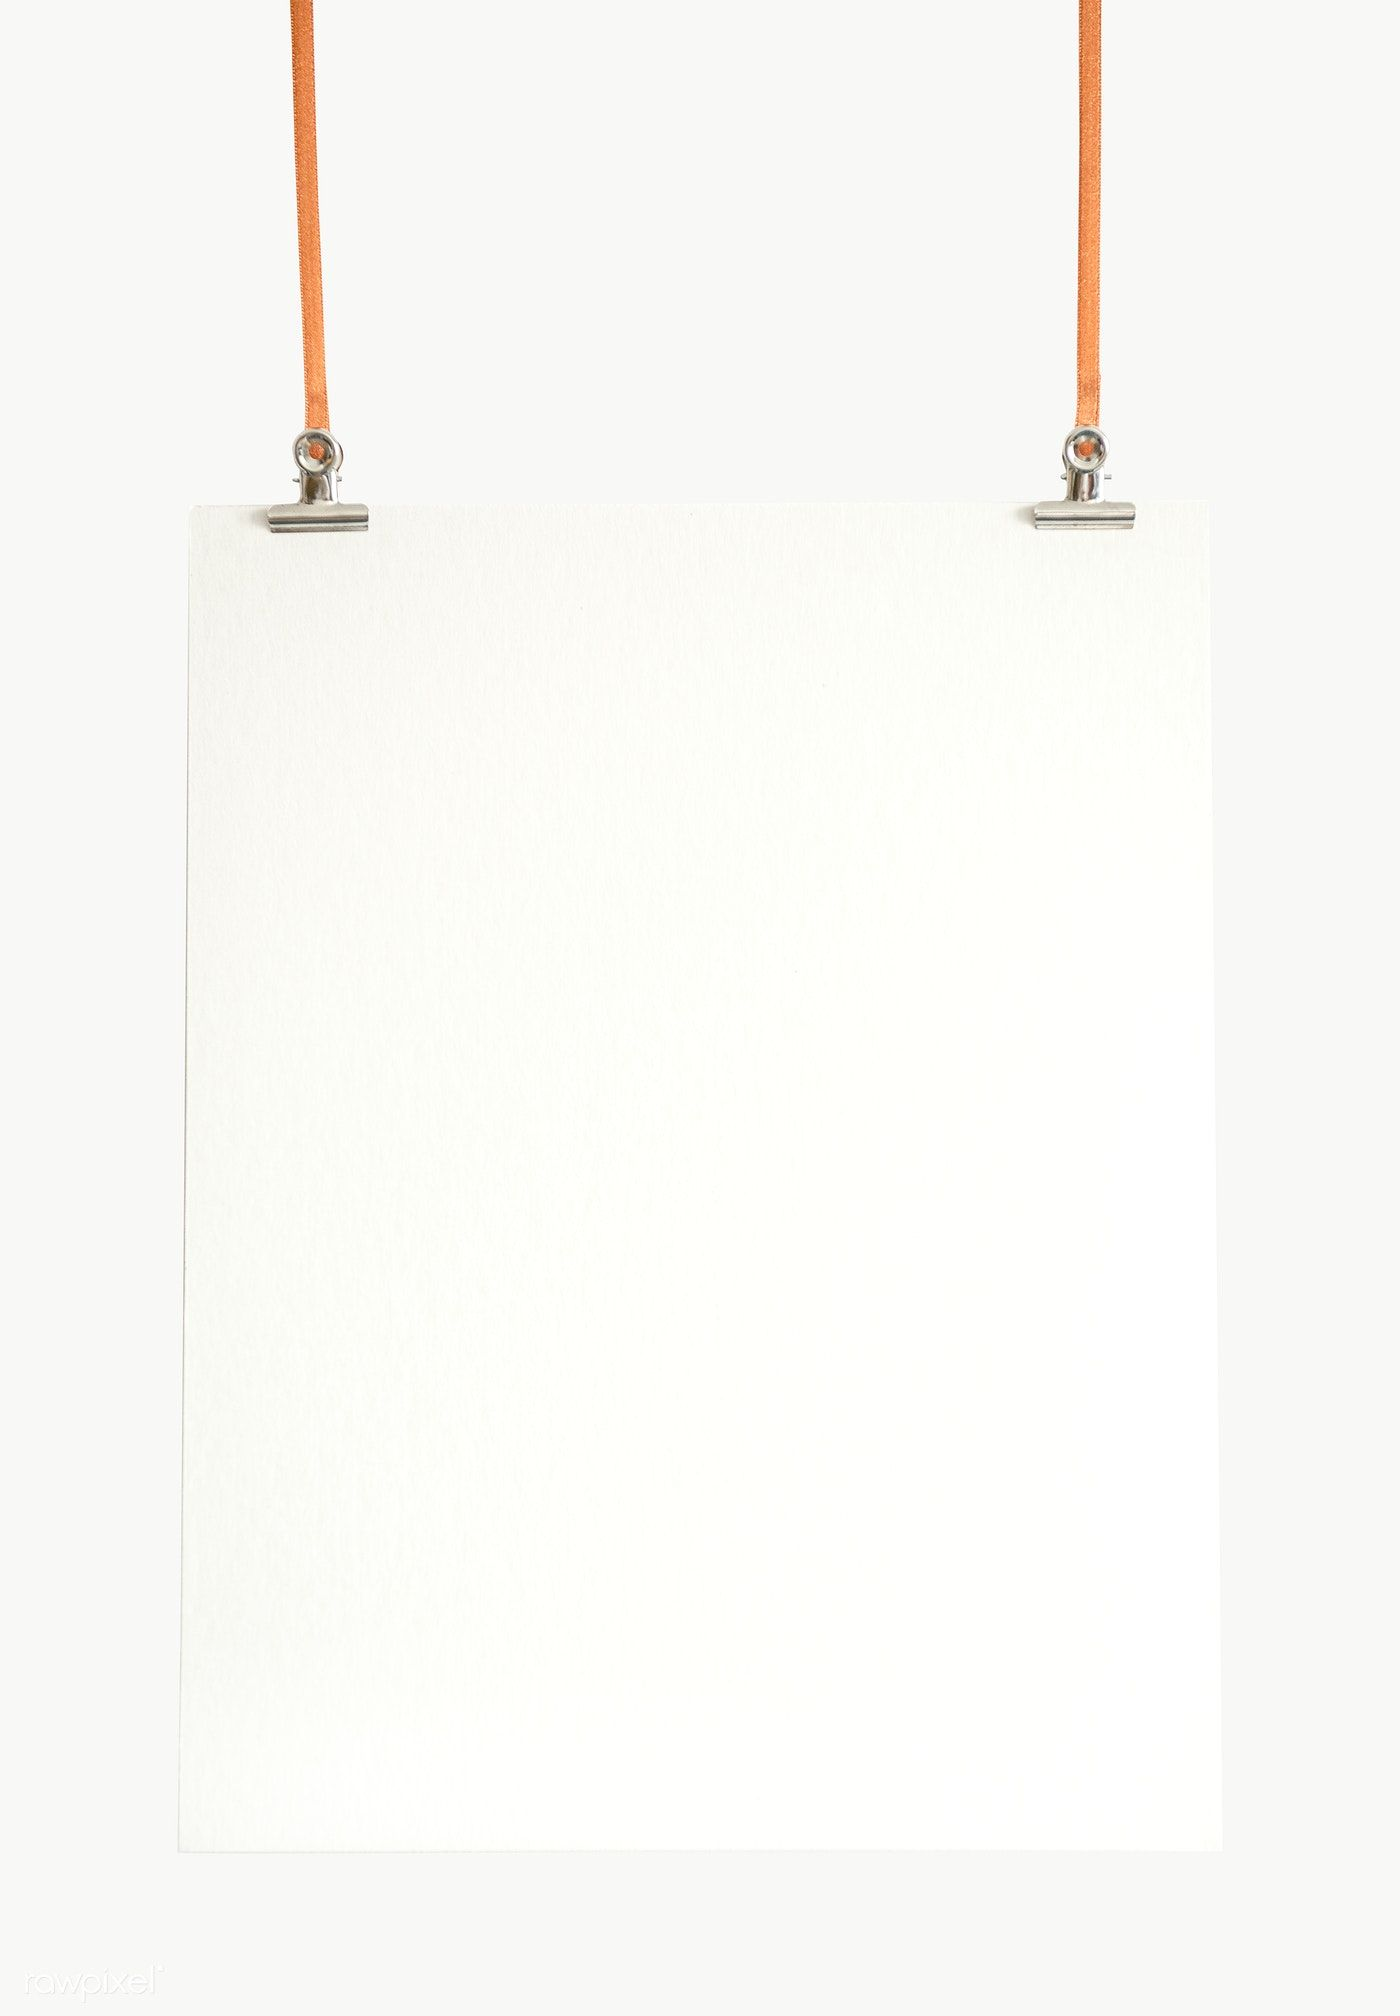 Blank Hanging Board Template Transparent Png Premium Image By Rawpixel Com Awirwreckkwrar Web Design Resources Templates Blank Poster